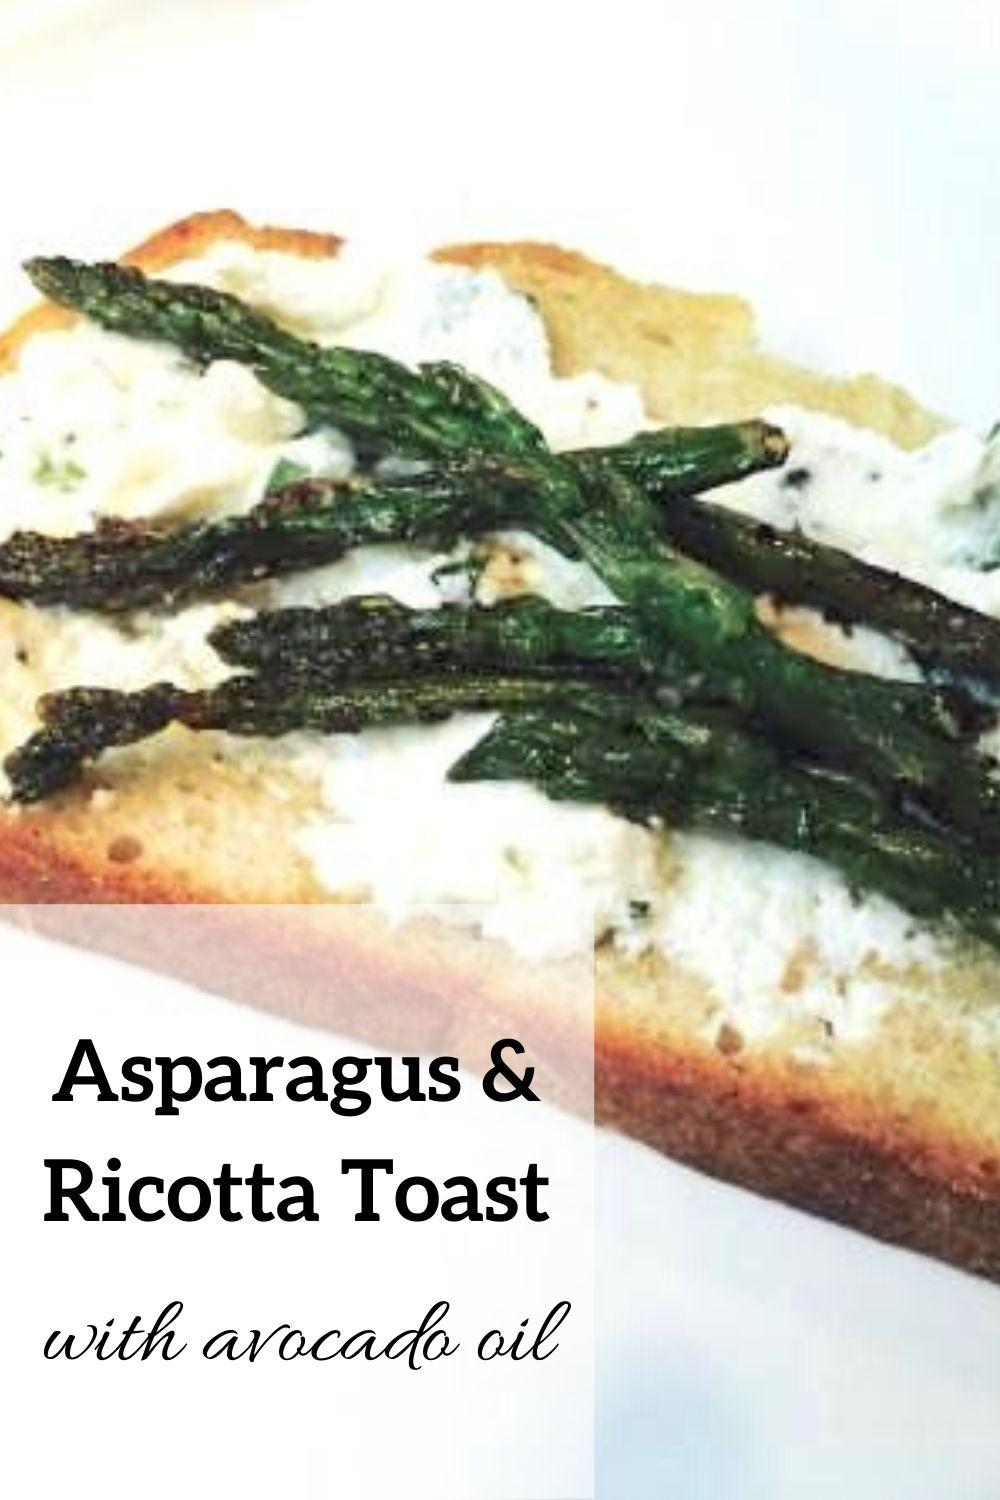 Asparagus & Ricotta Toast with Avocado Oil